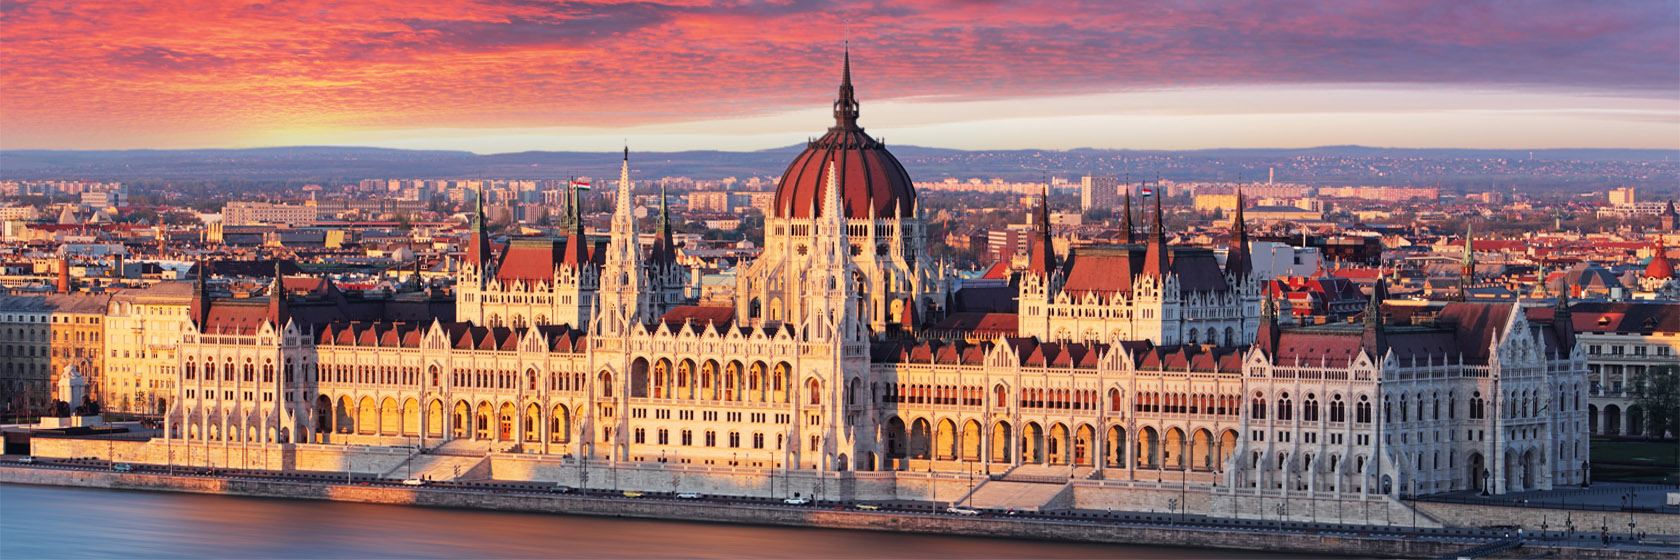 a-tale-of-three-cities-9-days-with-a-and-k-budapest-hungarian-parliament-building